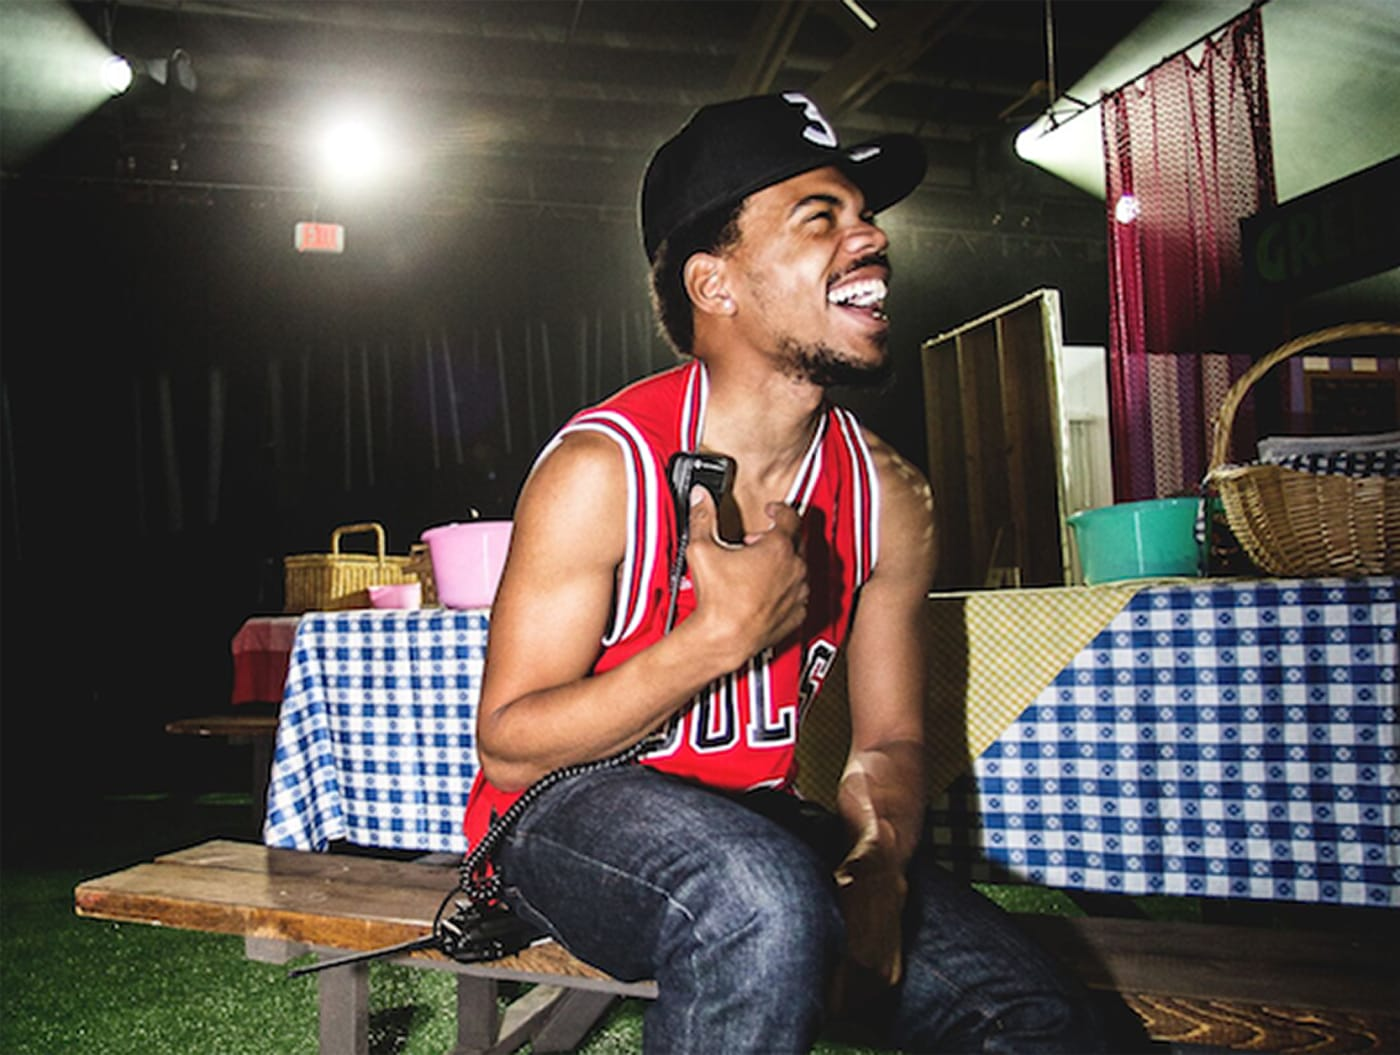 chance the rapper magnificent coloring world